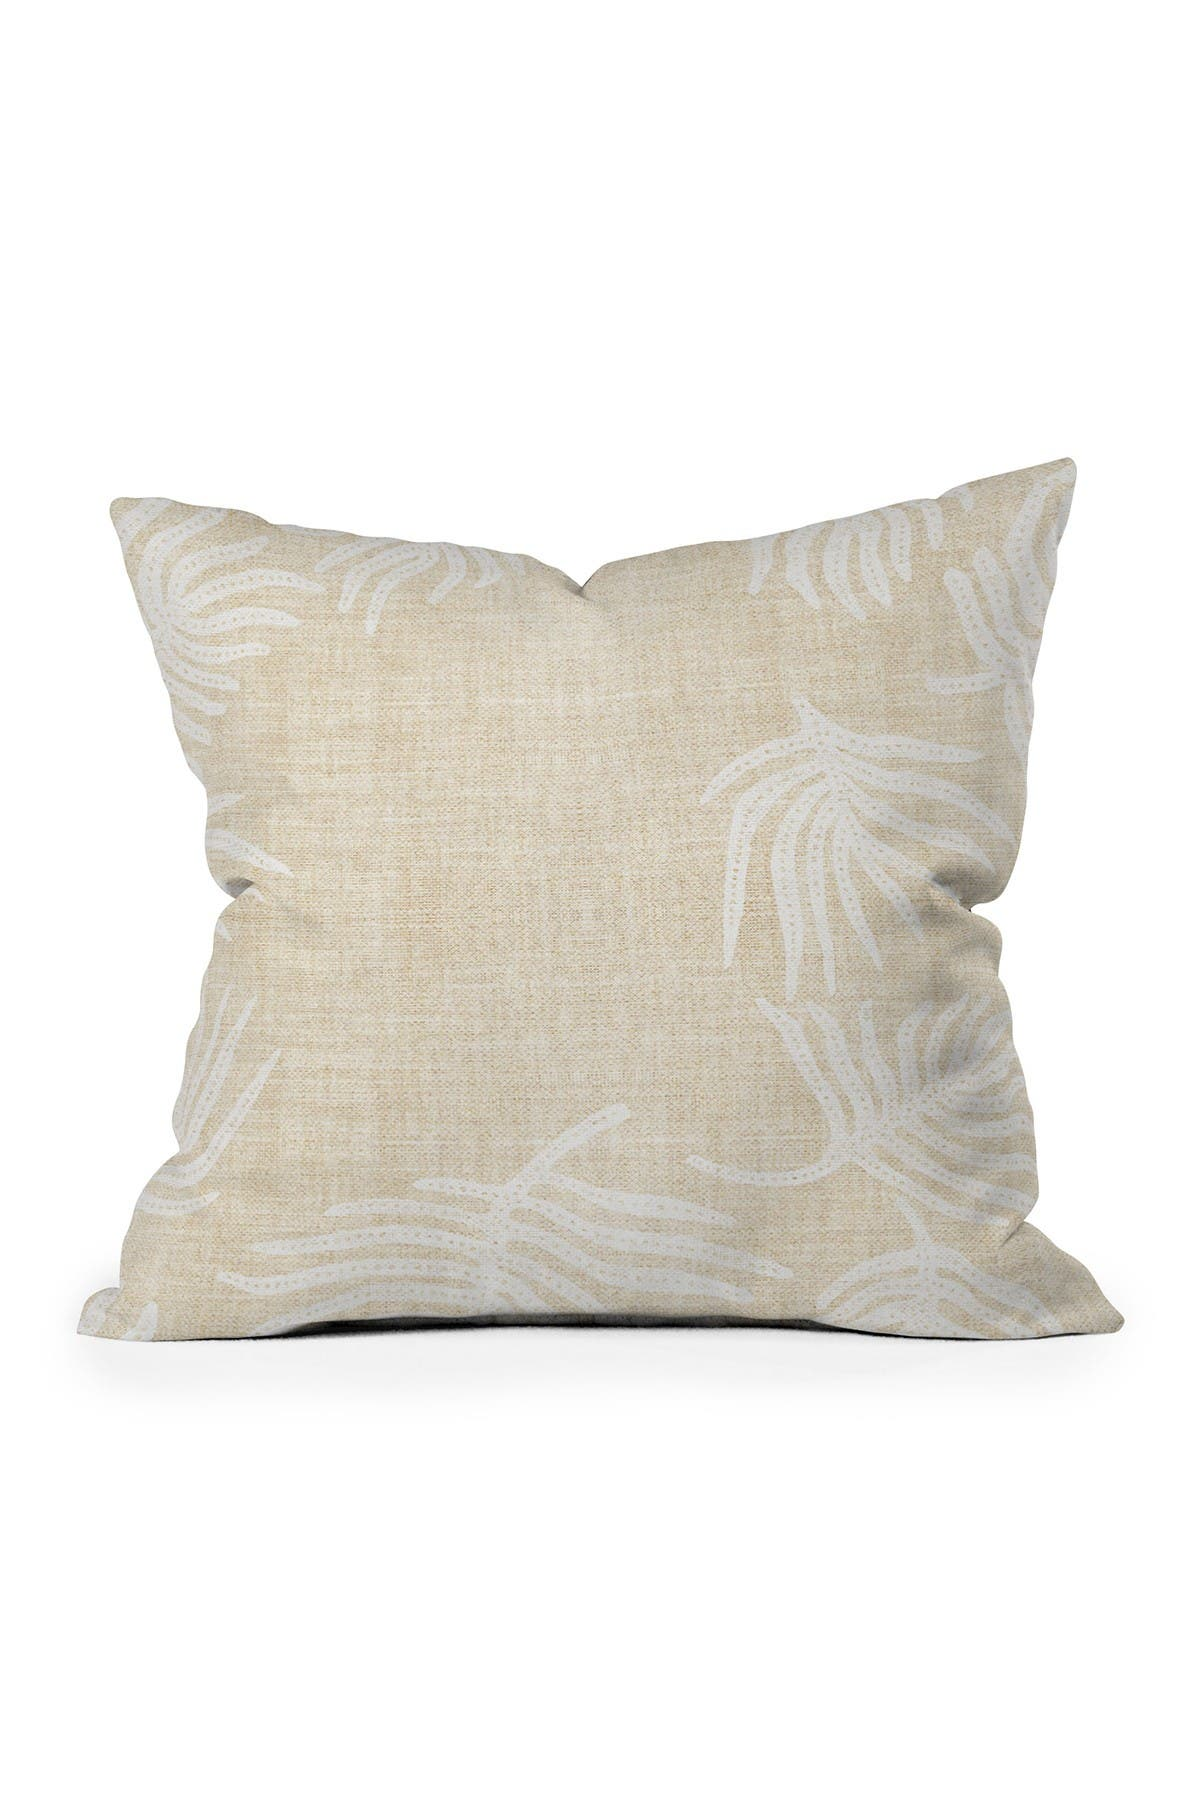 Image of Deny Designs Holli Zollinger Palm Light Square Throw Pillow